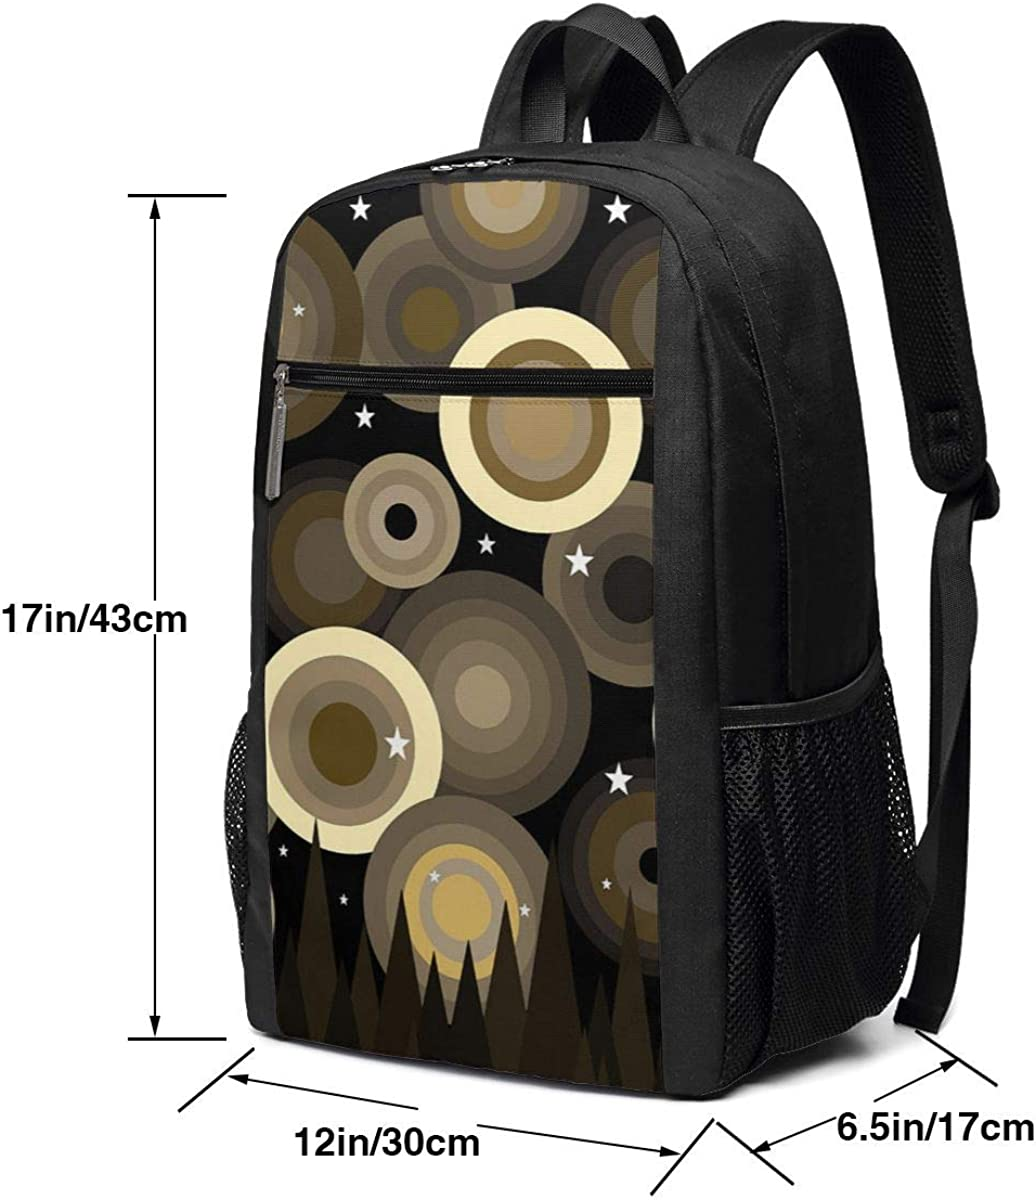 XTYND556 Golden Starry College Commuter Backpack Large Capacity Laptop Bag 17 Inch Travel Bag